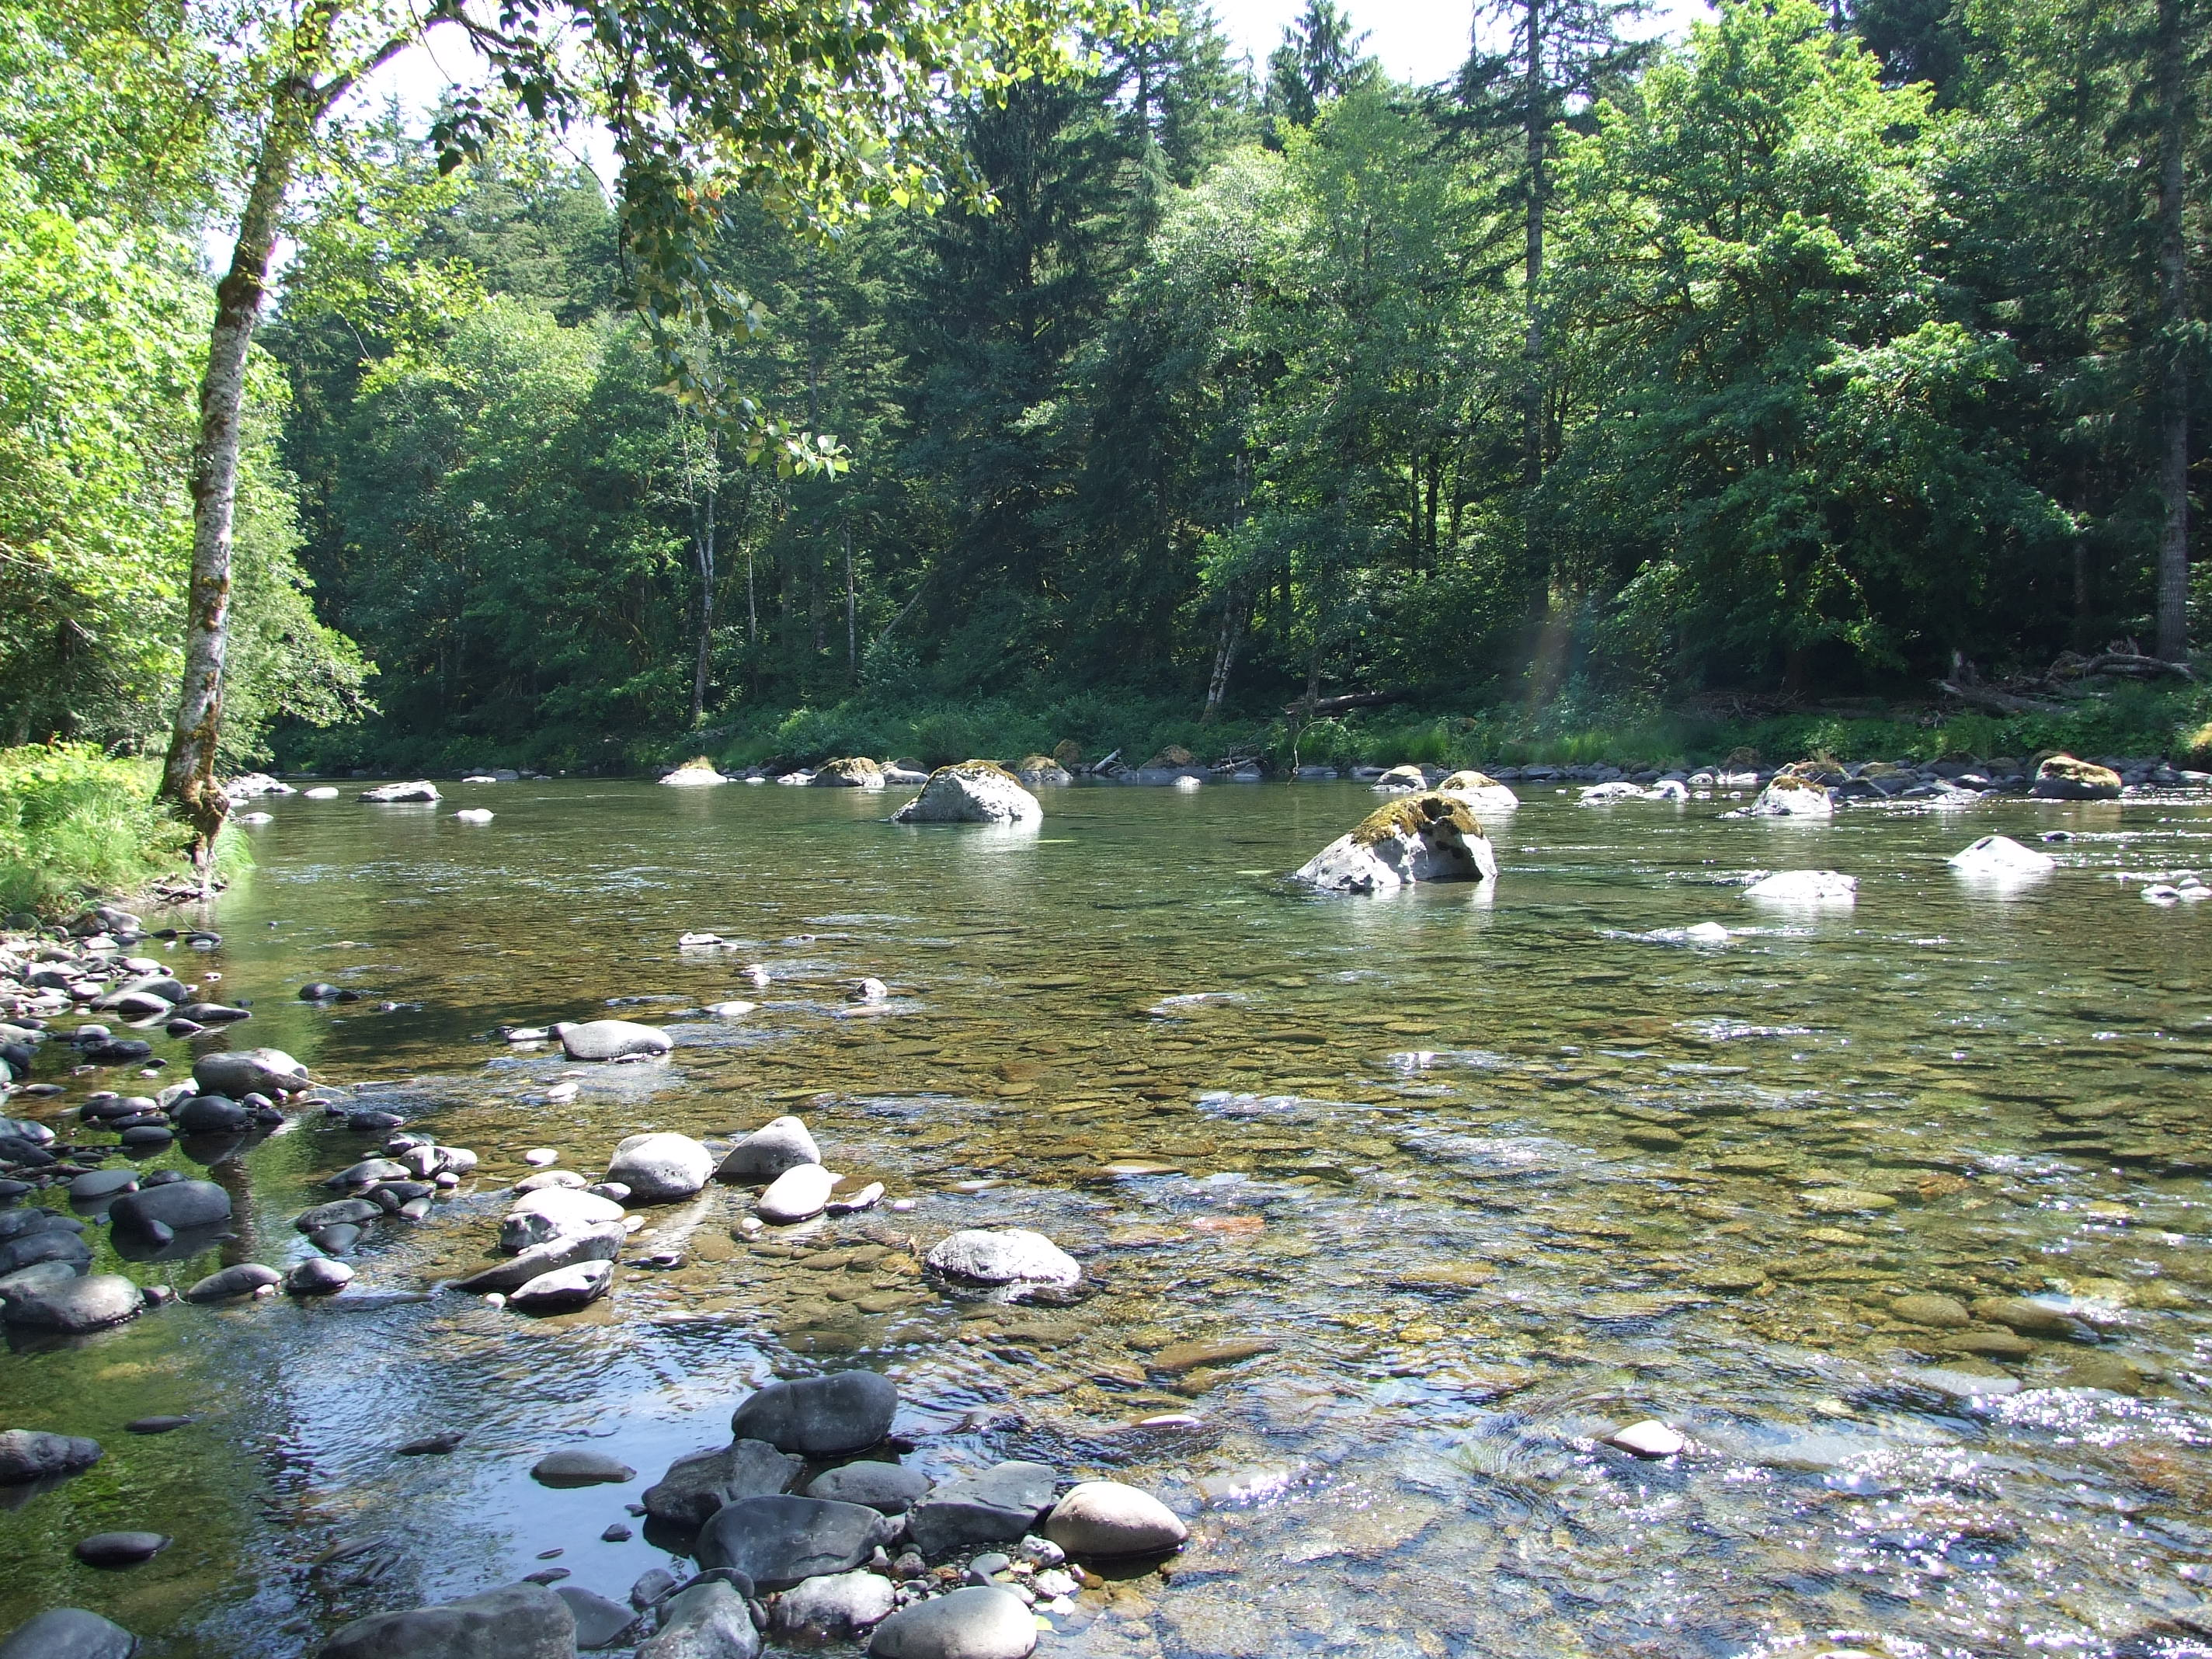 The river looking upstream at Sol Duc Riverside Cottages